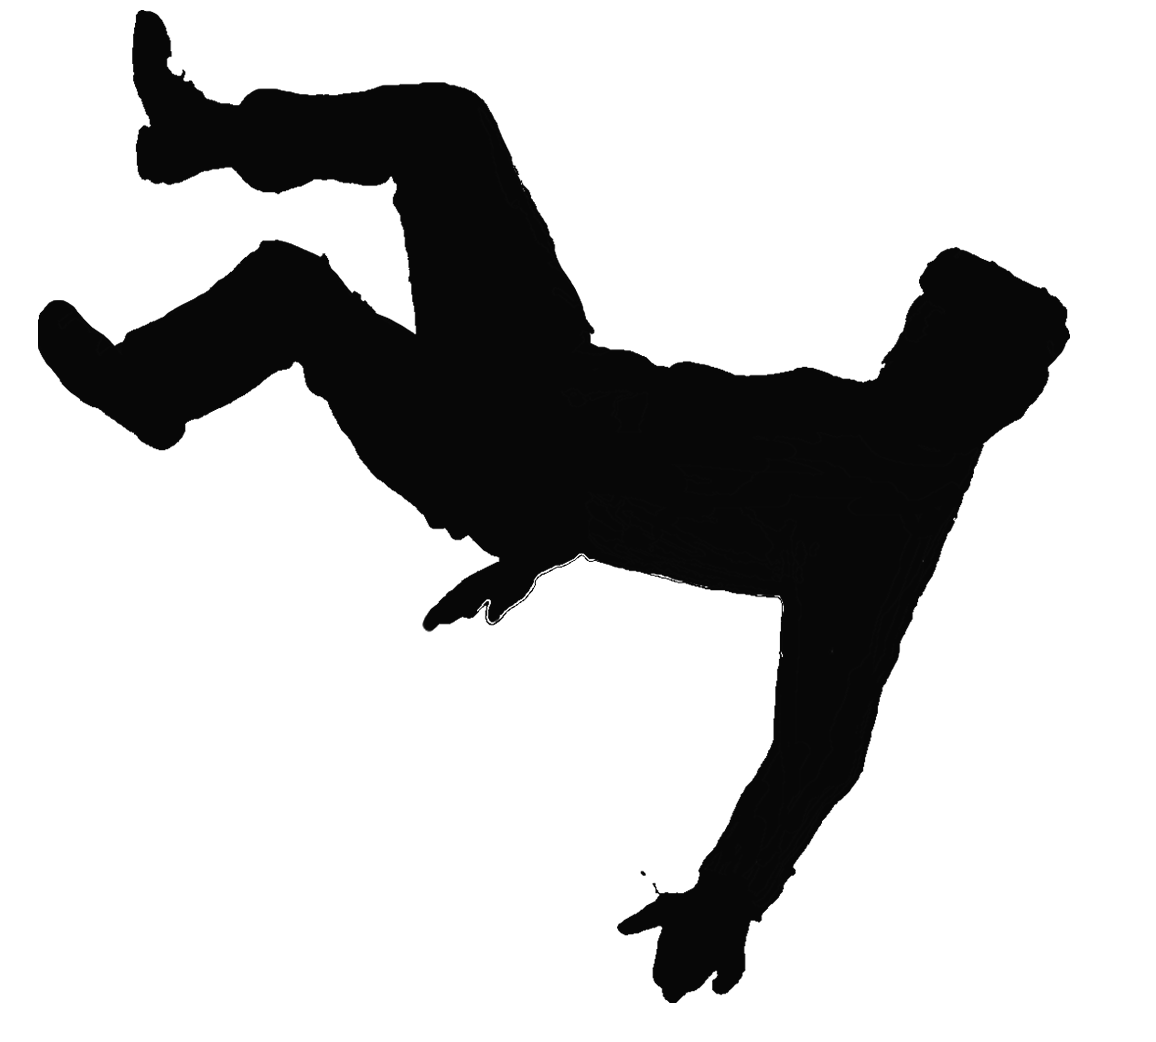 hight resolution of clip art image of guy slipping and falling clipart